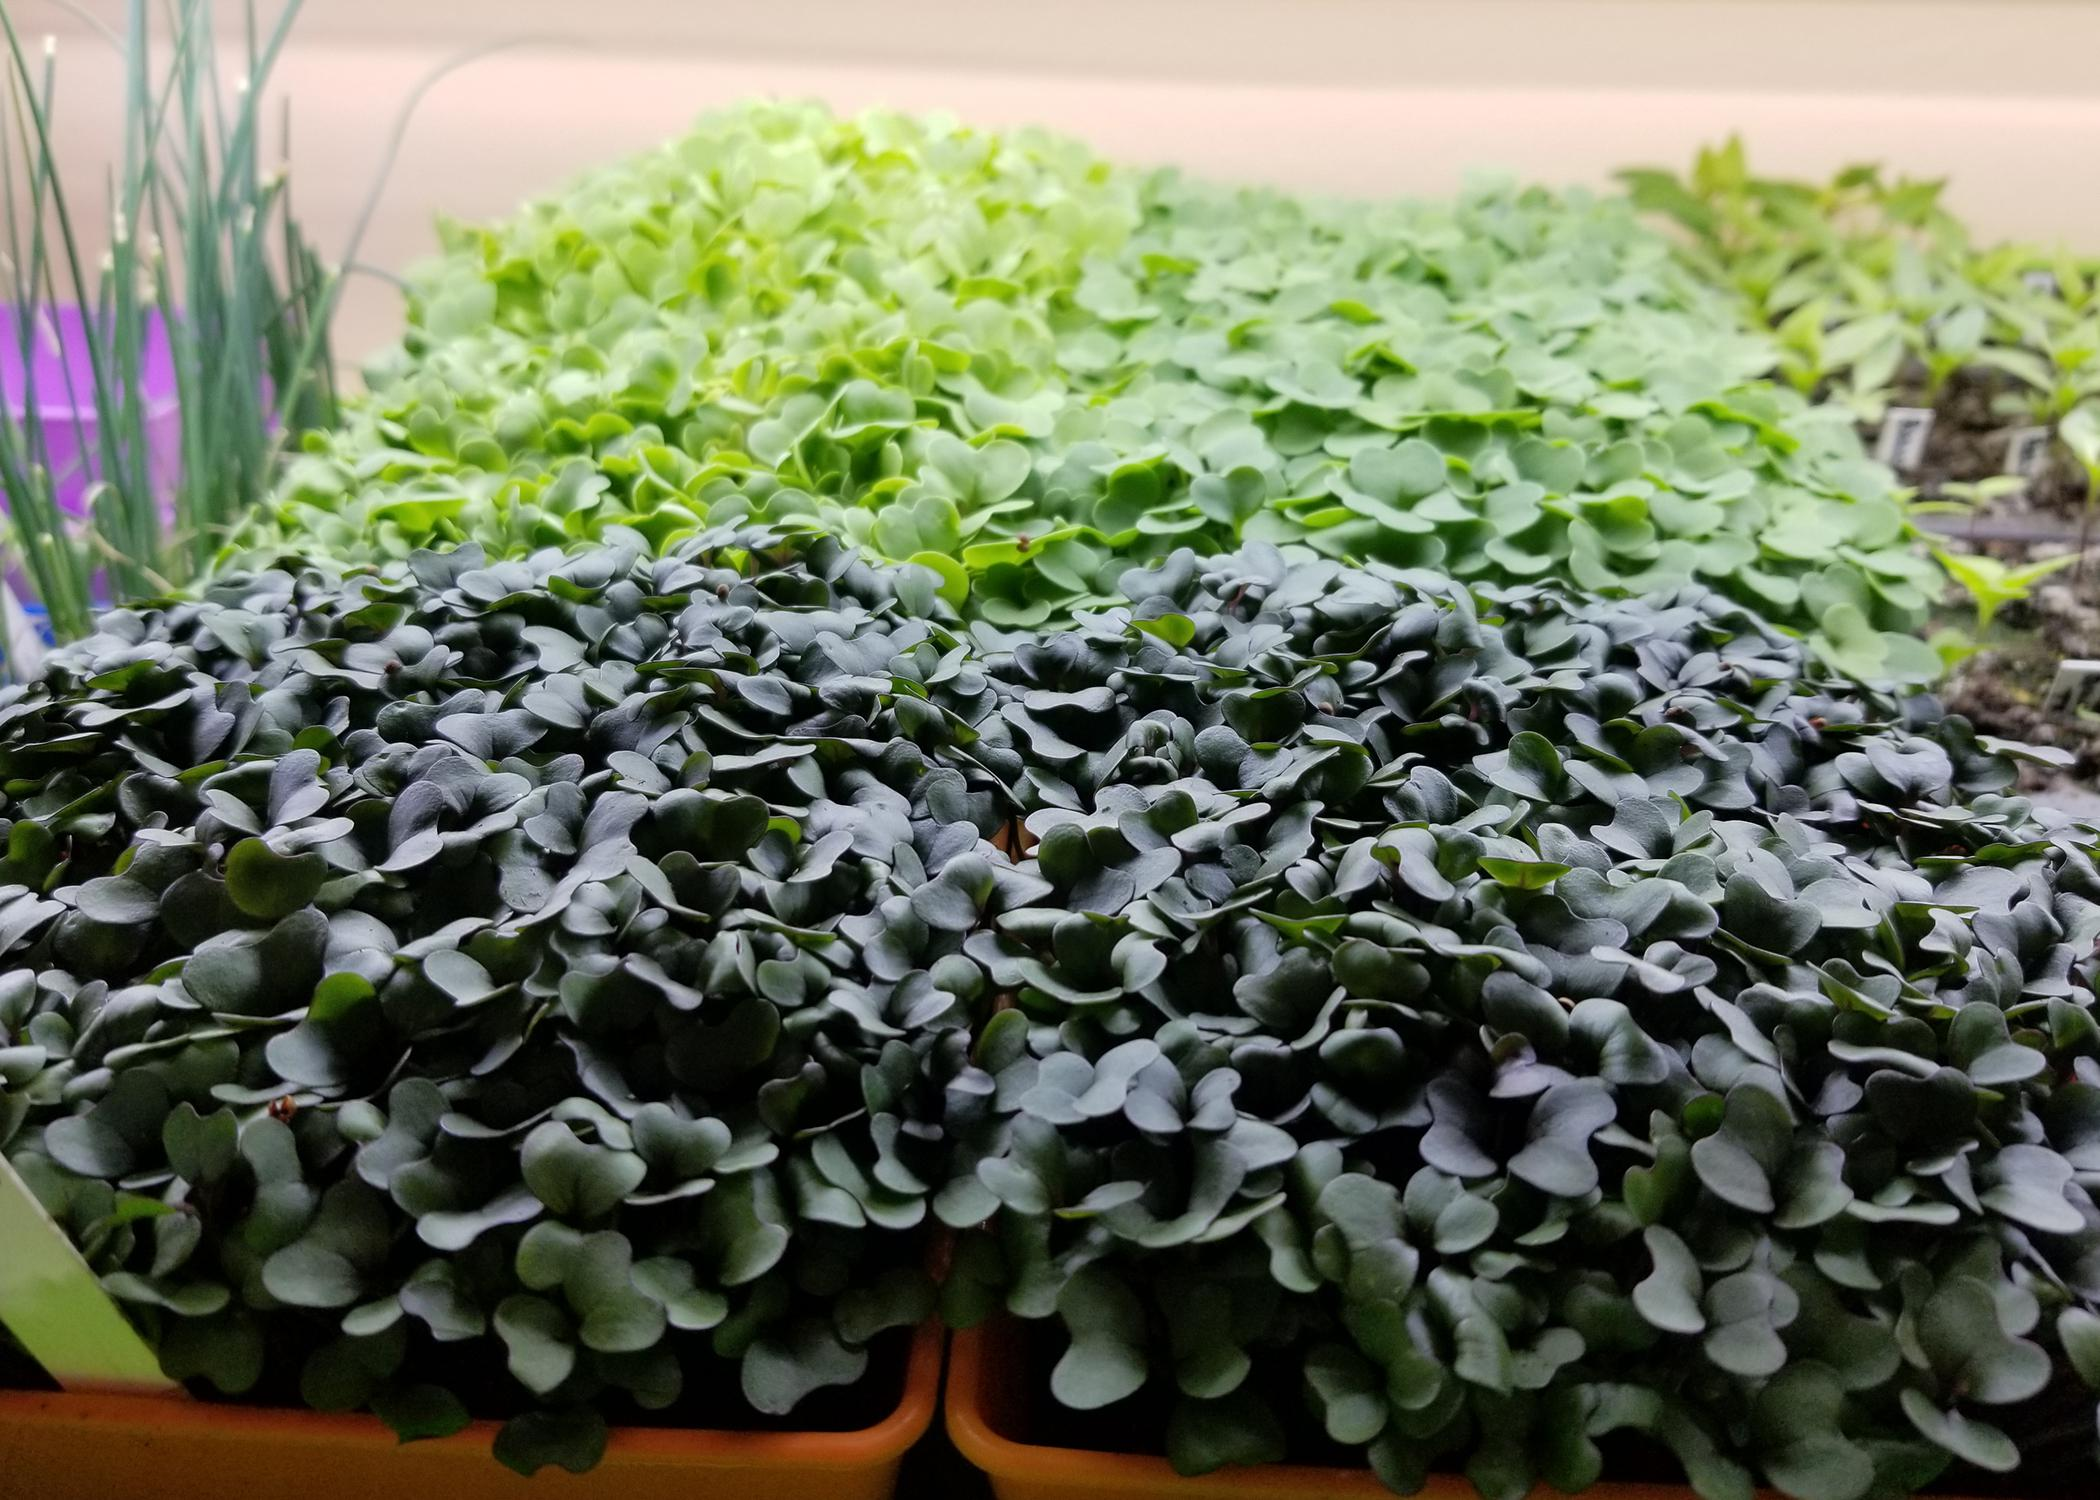 A carpet of tiny green and purple plants fill garden trays.